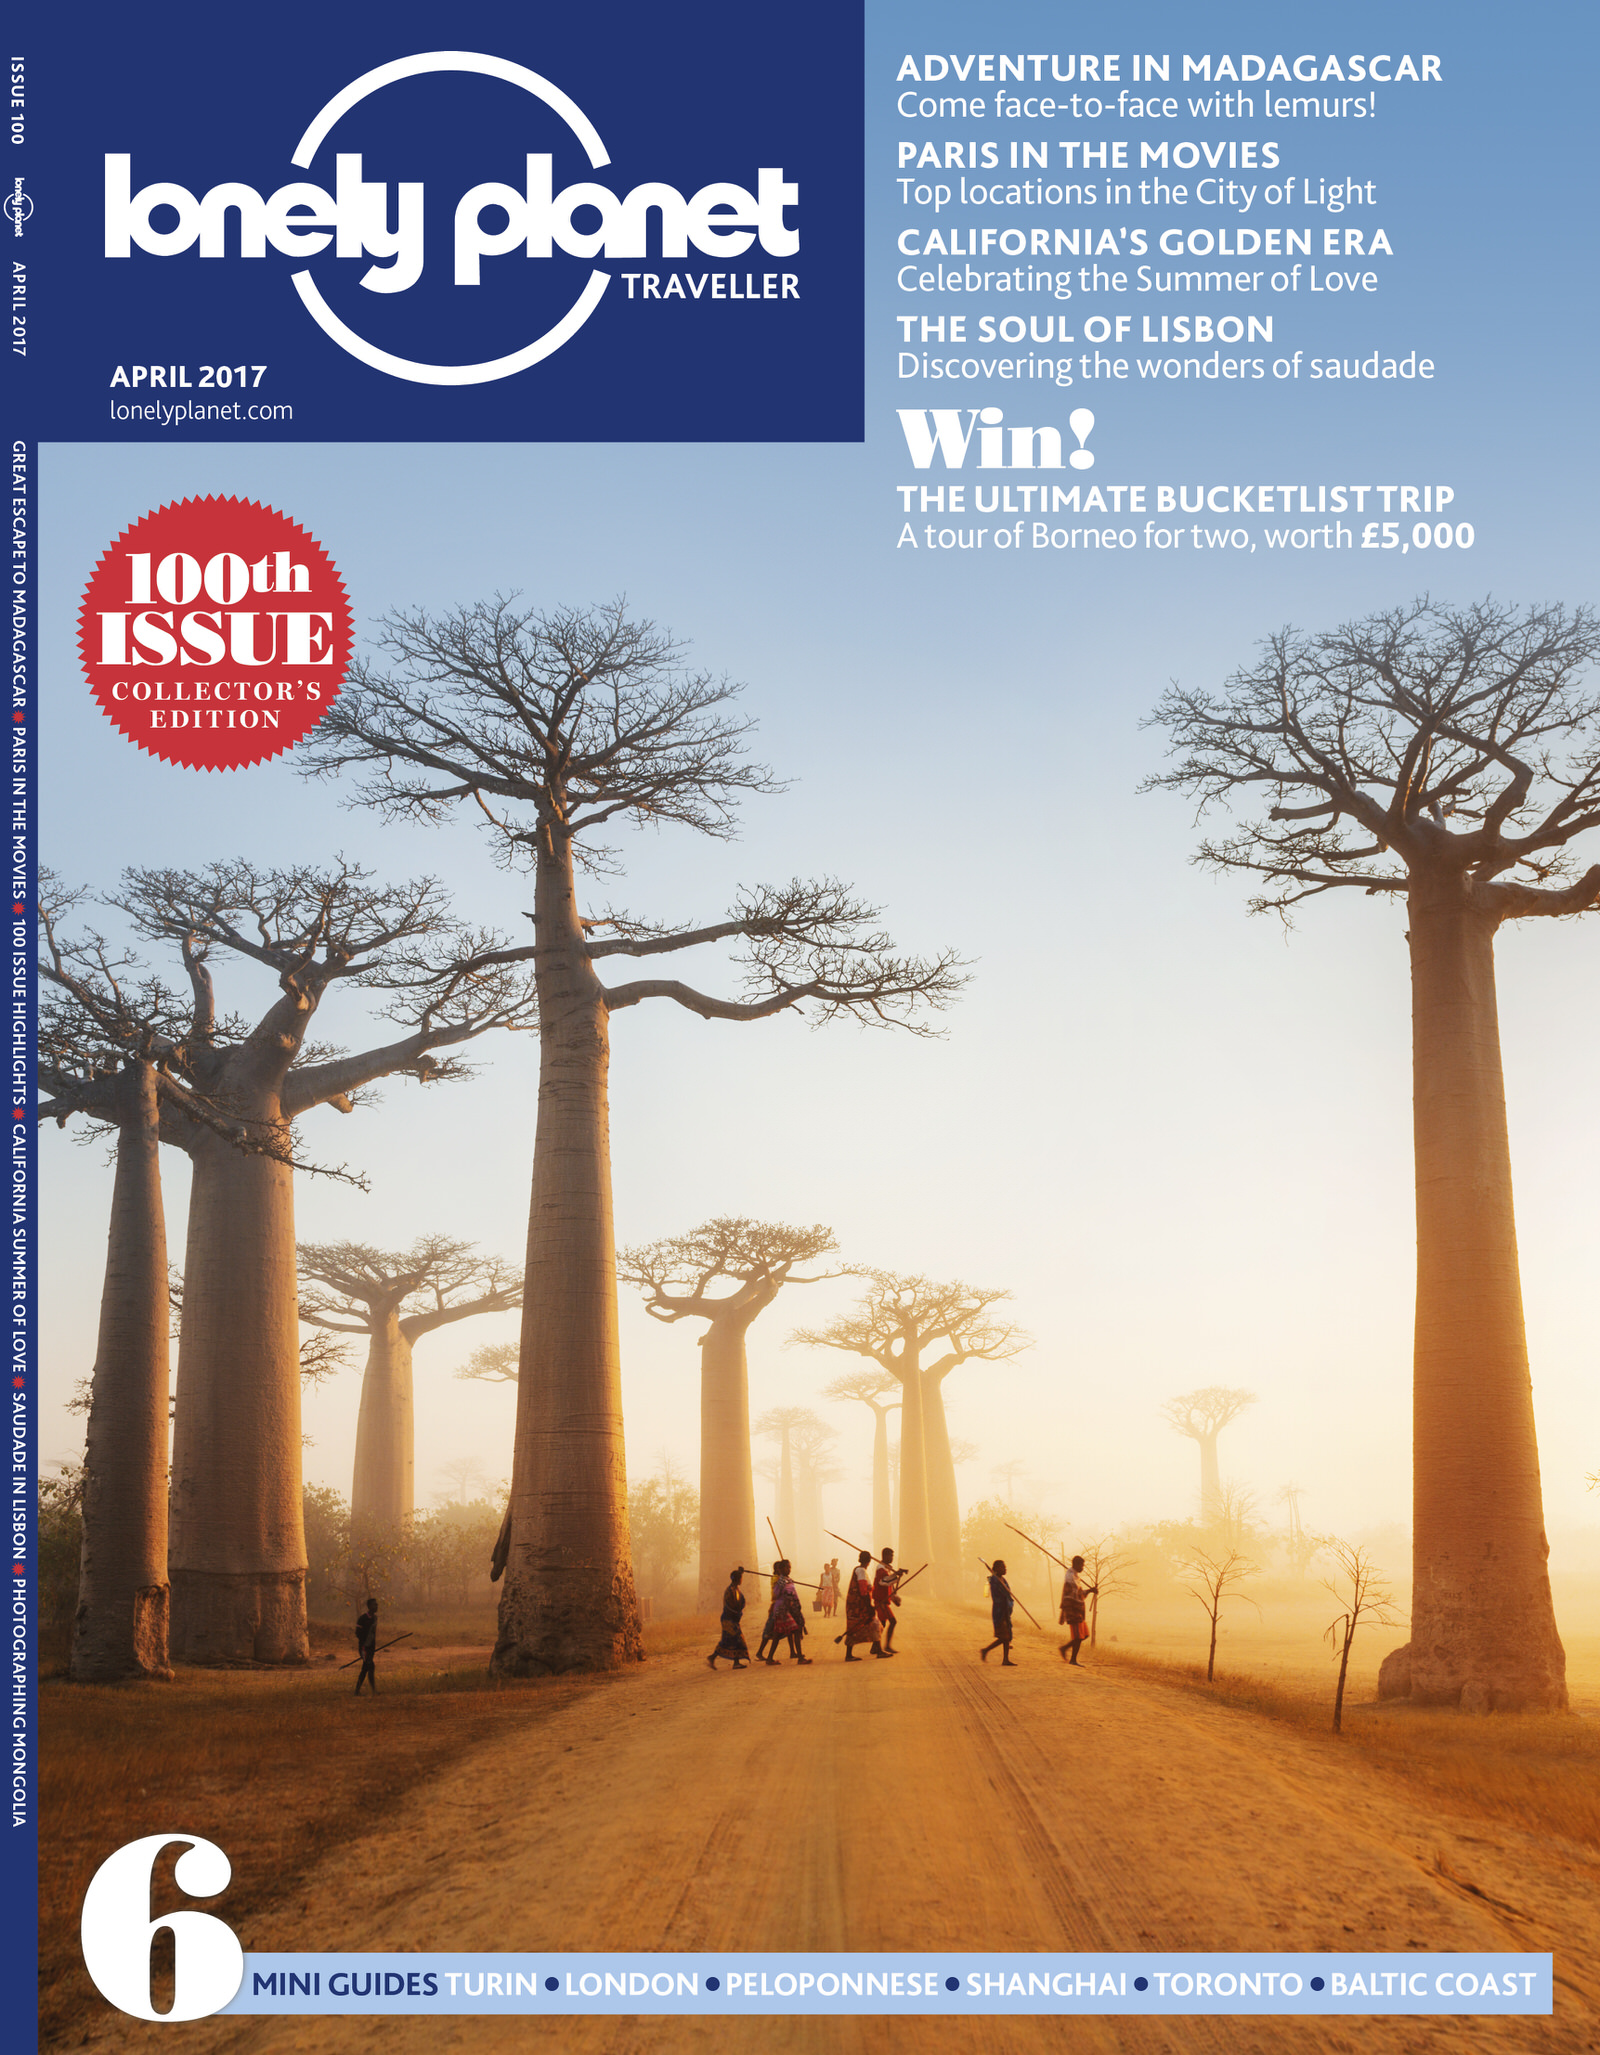 Behind the 'zines: Lonely Planet Traveller's April issue – Lonely Planet's  travel blog